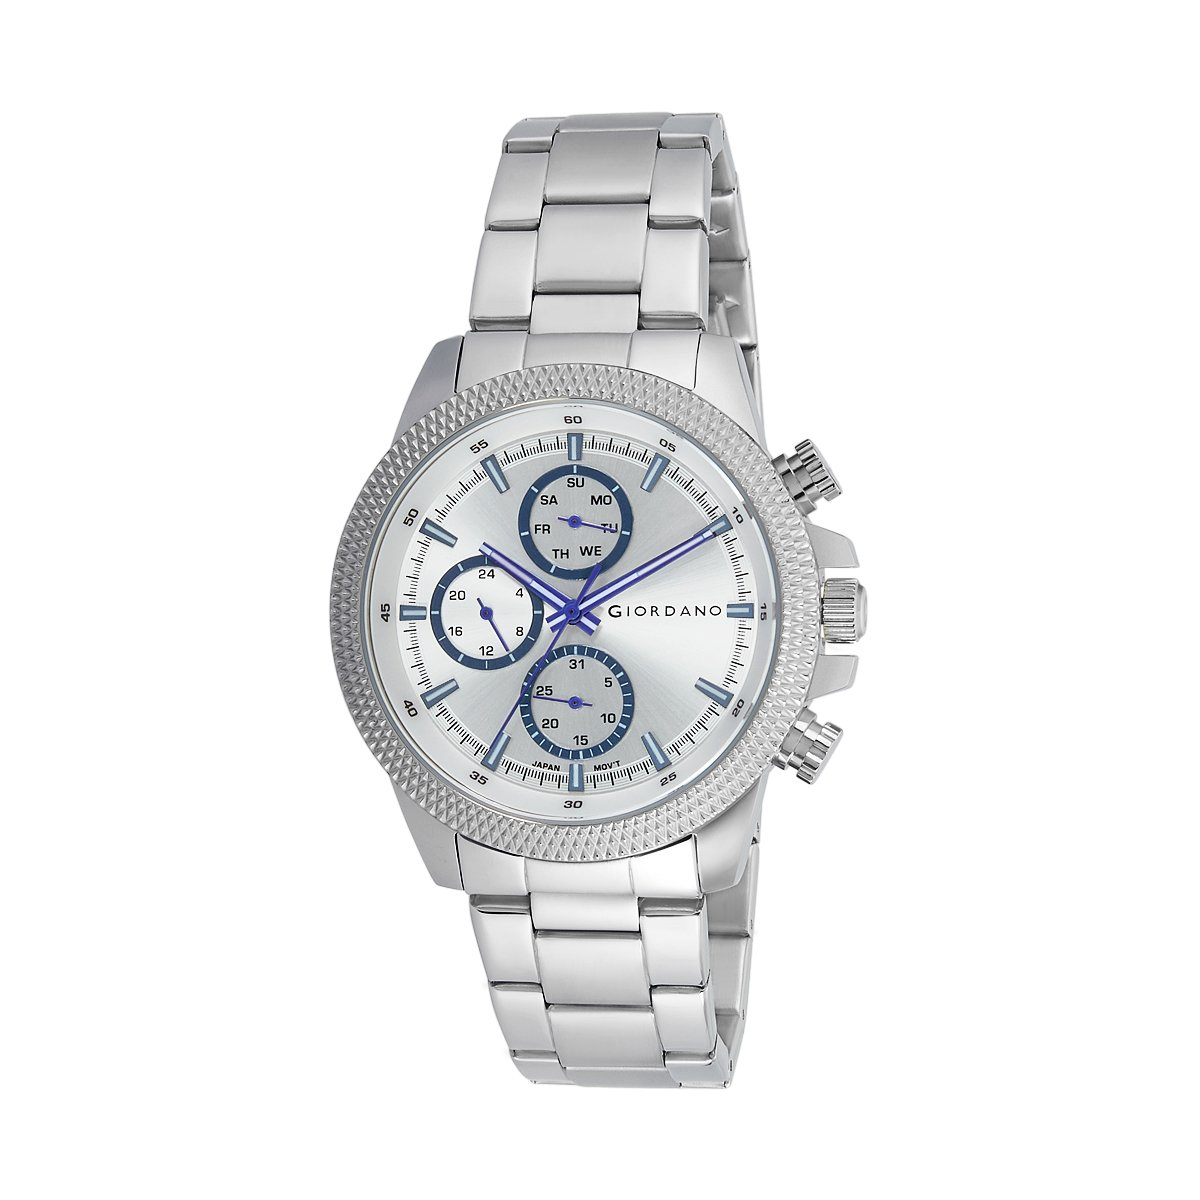 Dial 1901 Low Giordano 11 Buy At Watch Analog Silver Men's Online HD29IE